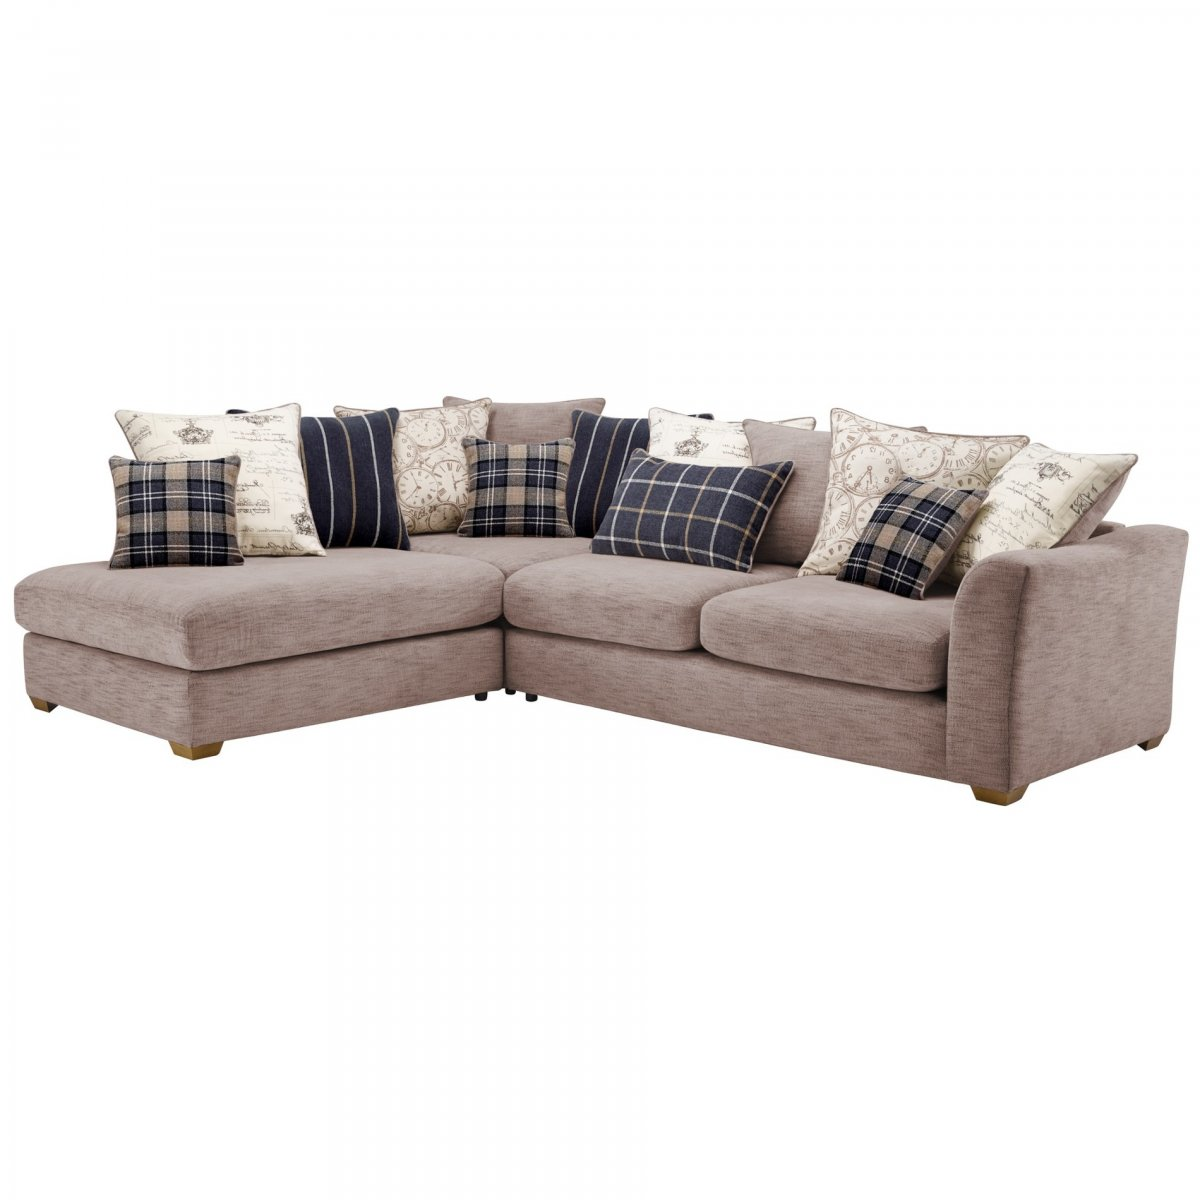 Florence Right Hand Corner Sofa with Pillow Back in Silver